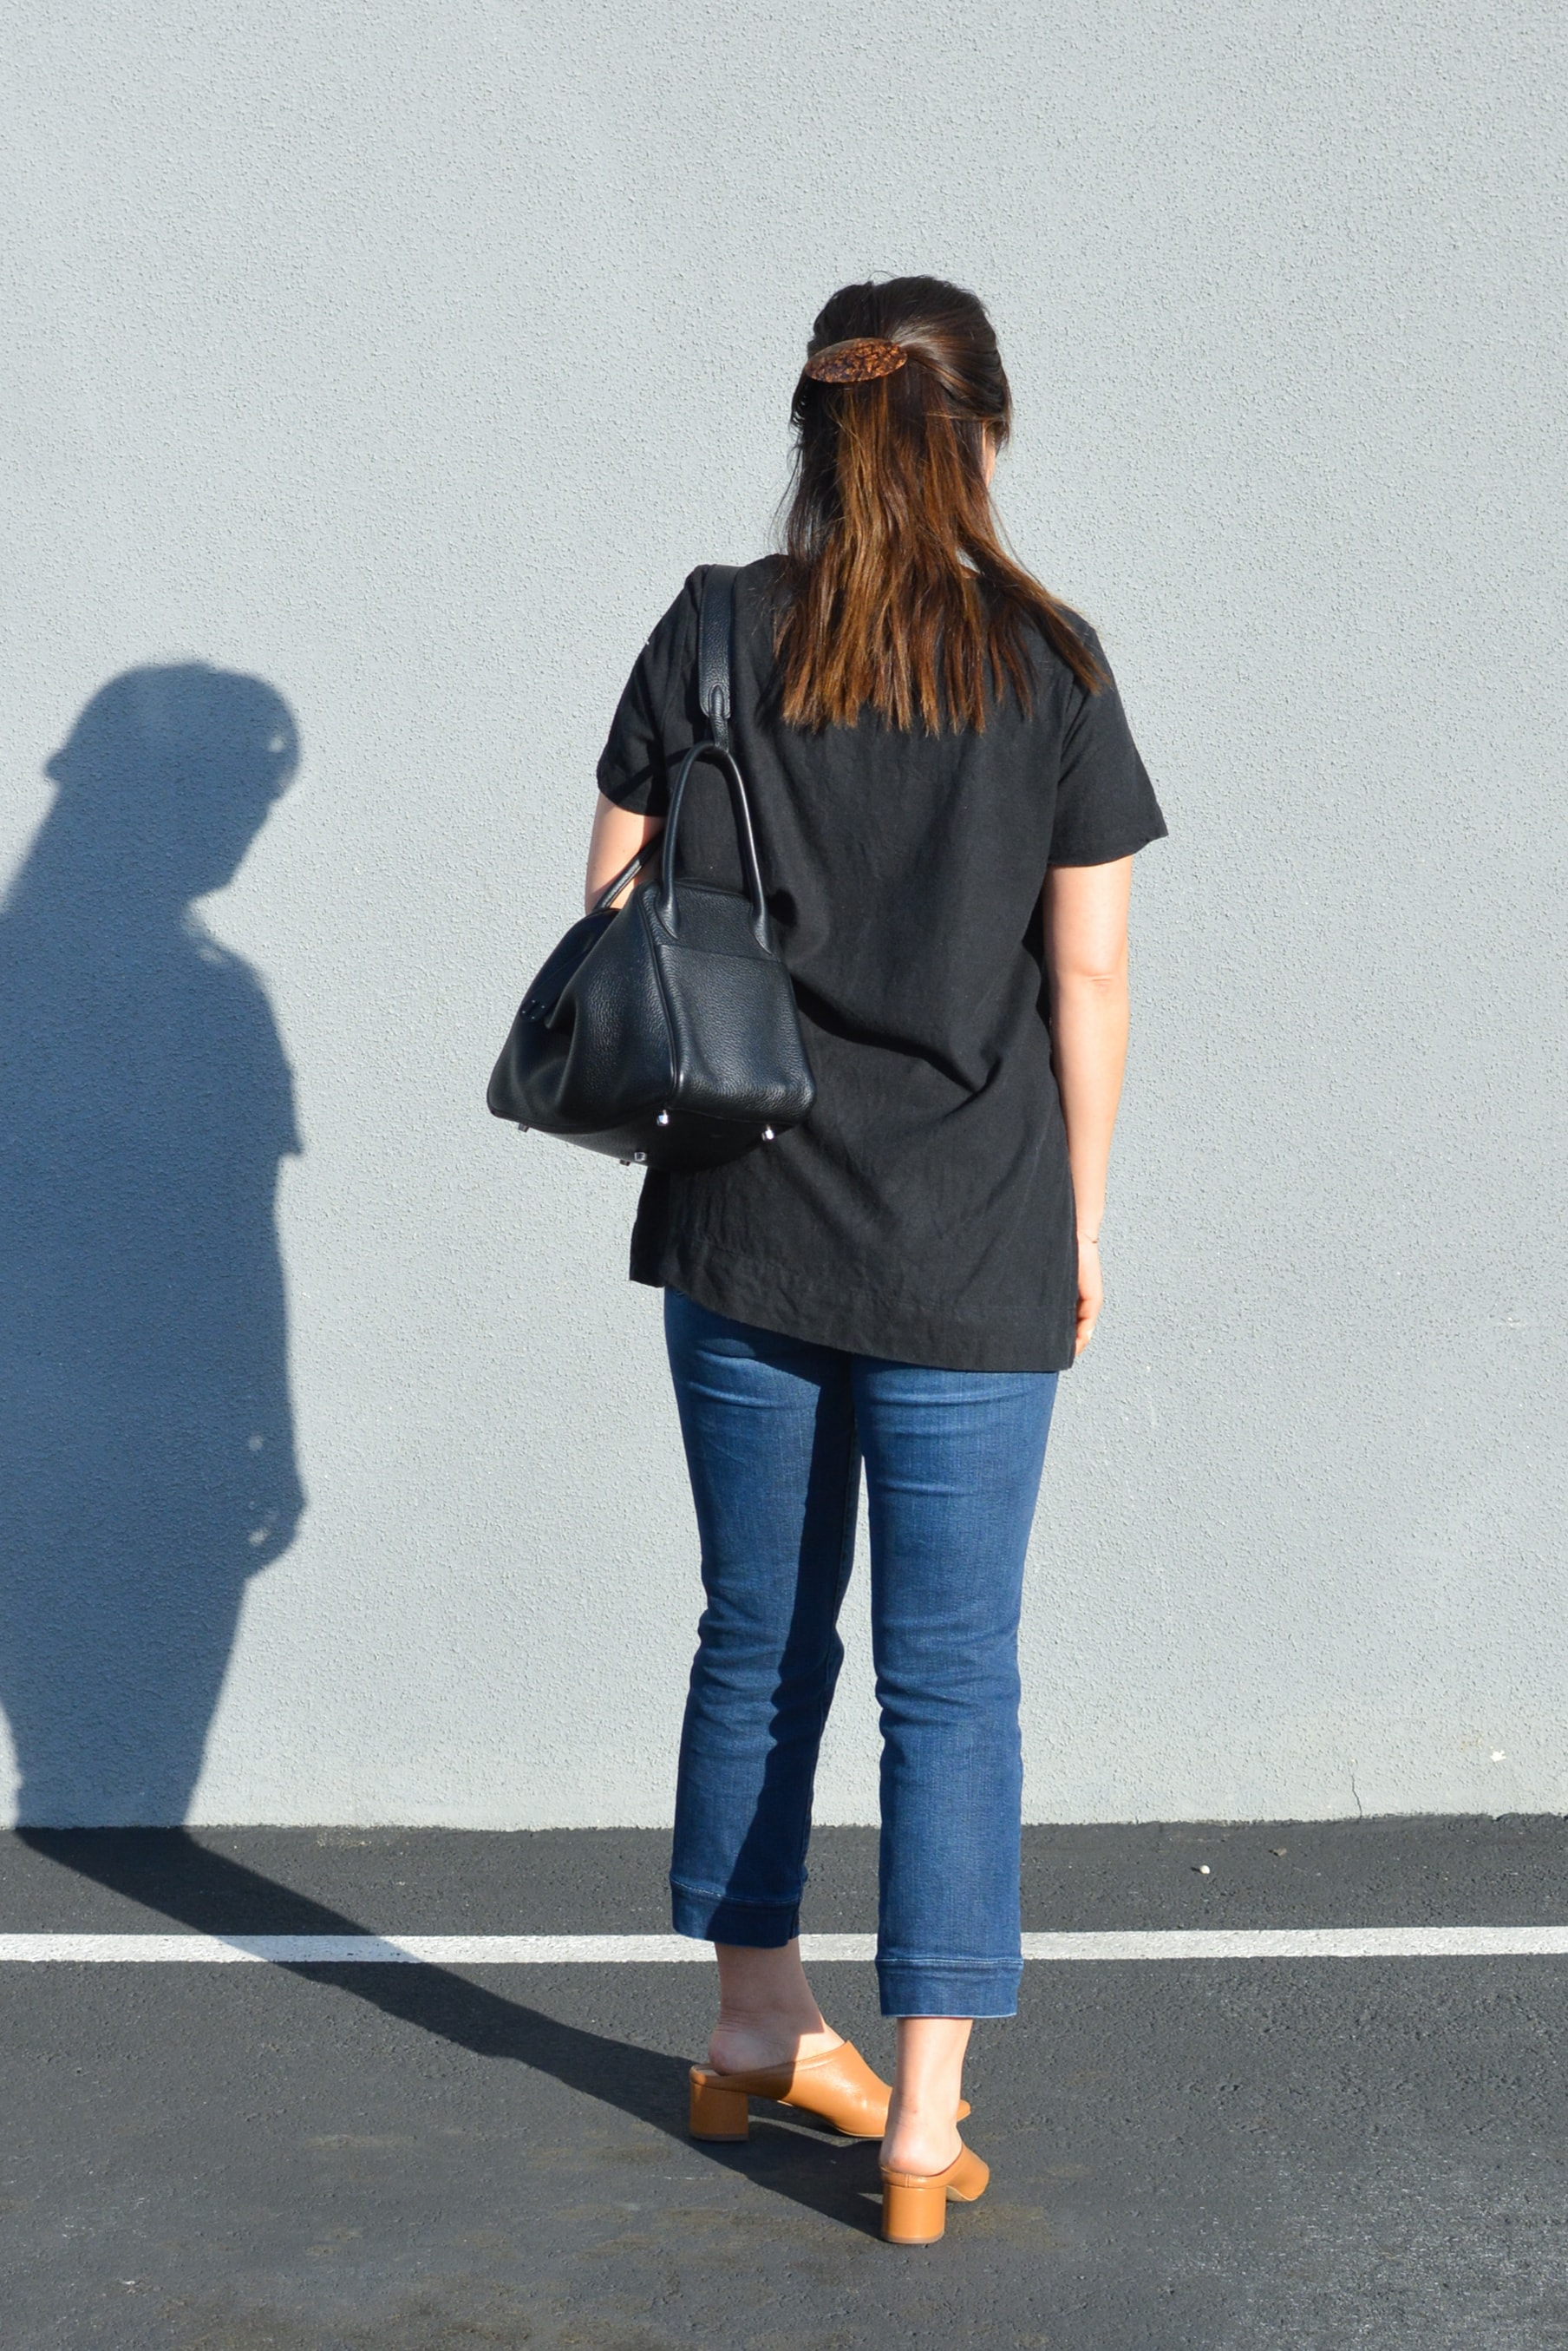 Jamie and the Jones Review The Stable Basic Split Tee Top  (6 of 6)-min.jpg